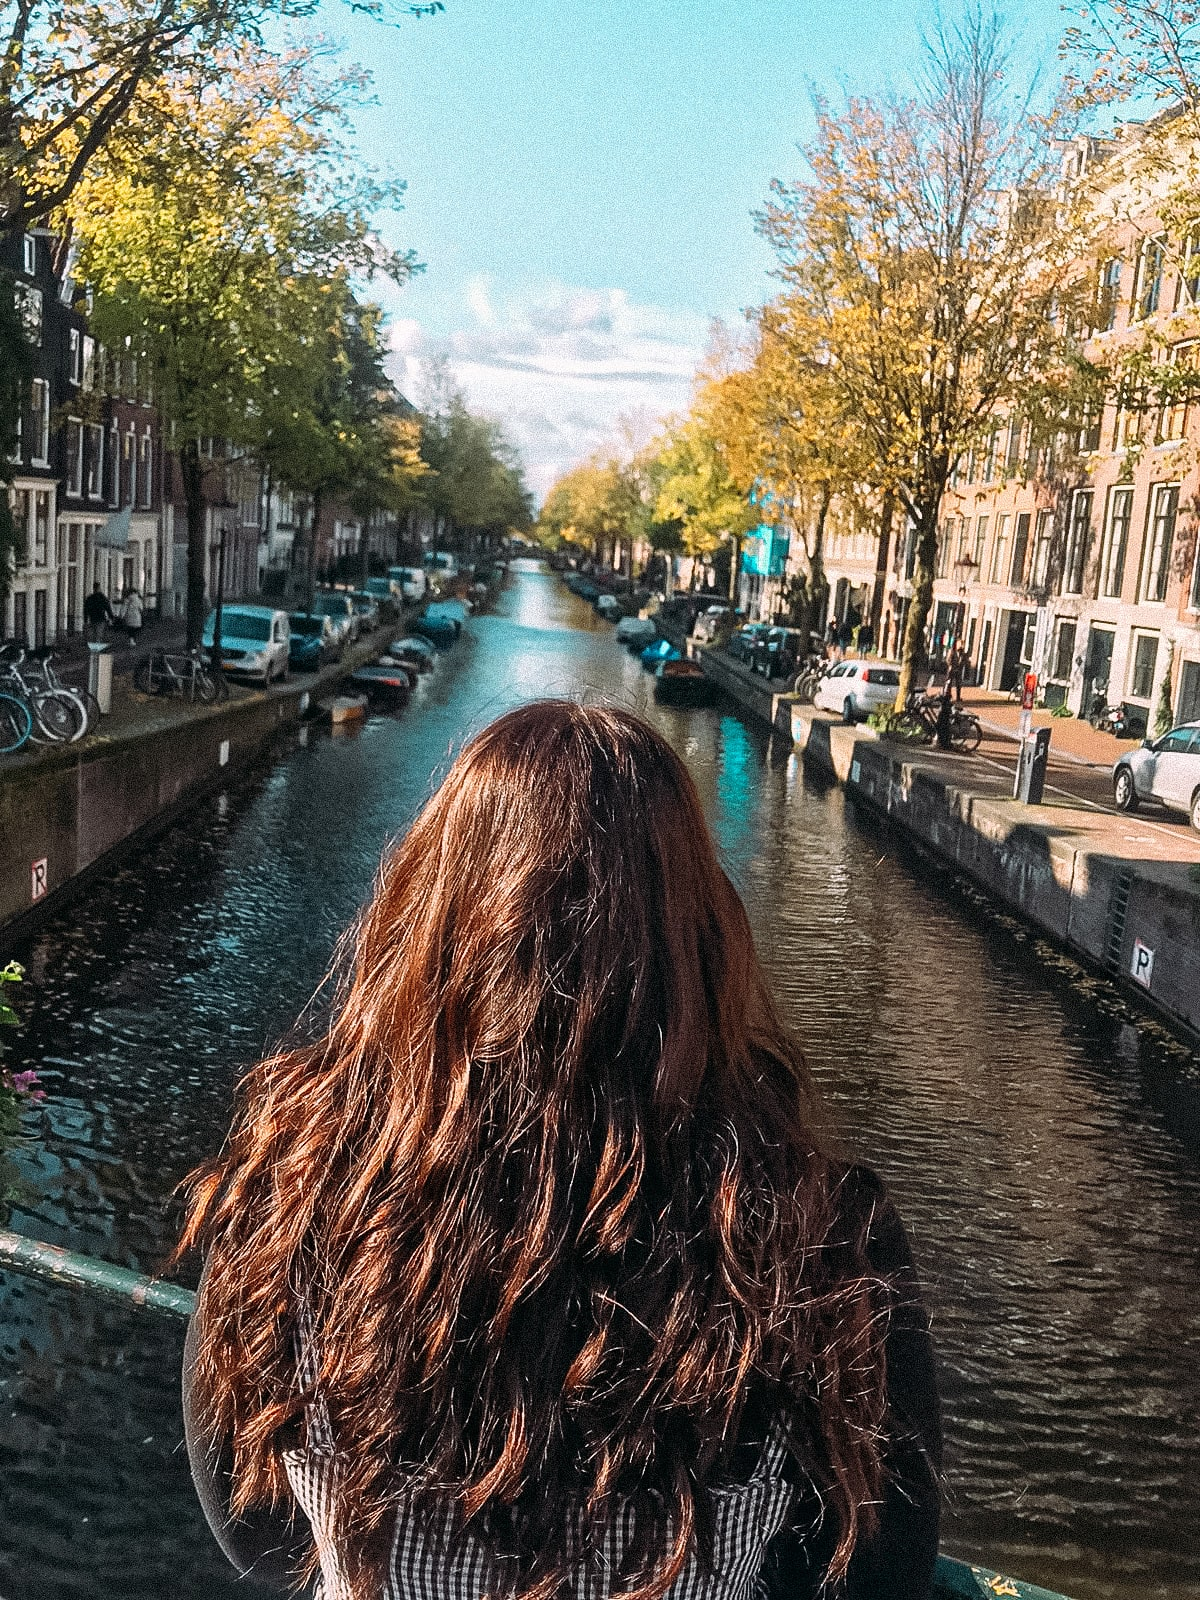 Curly haired girl looking over Amsterdam canal with blue skies